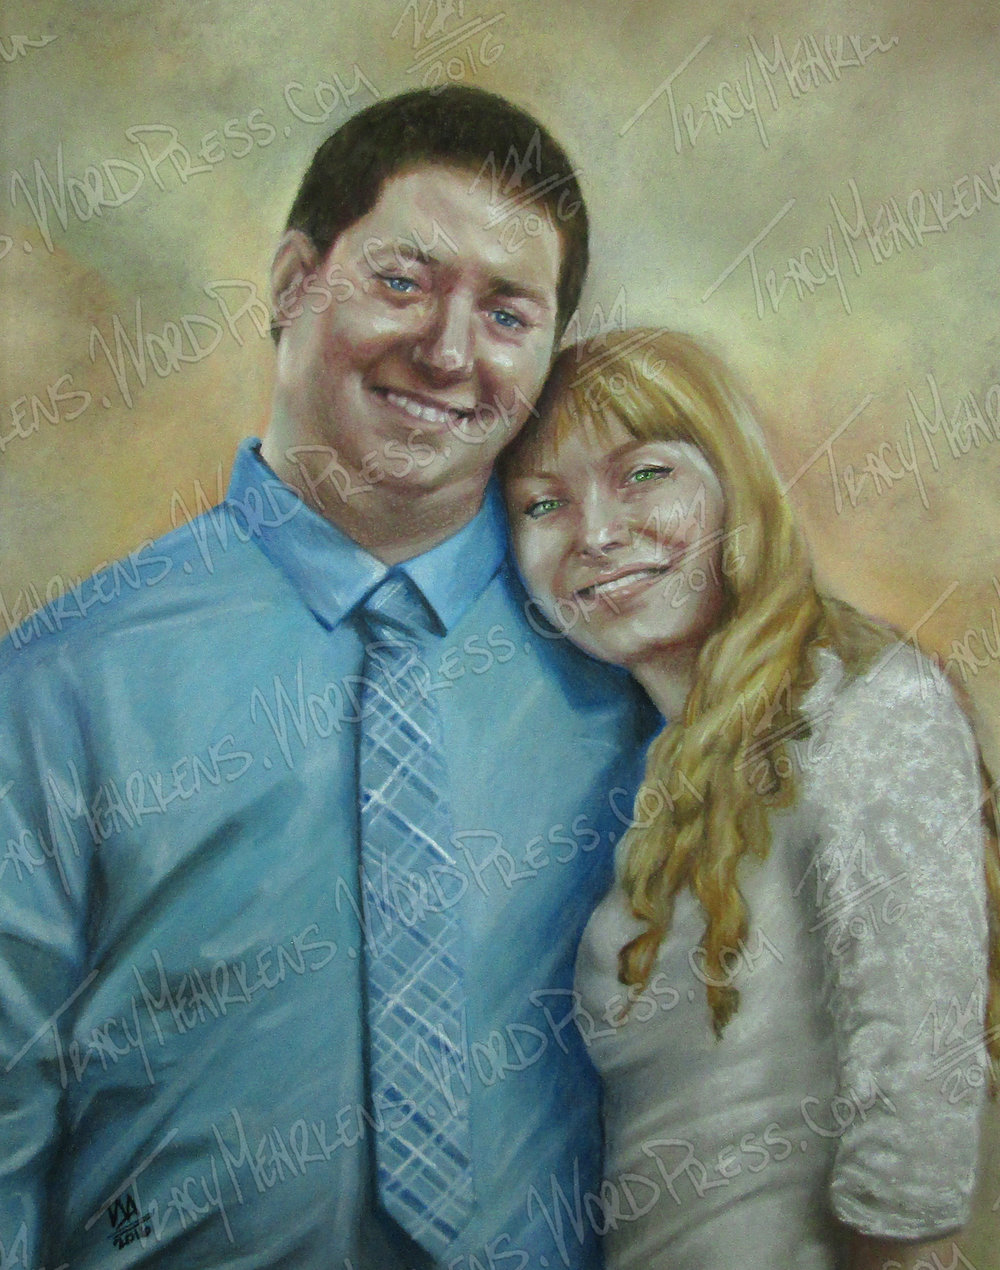 Copy of Newlyweds. Pastel on Paper. 11x14 in. 2016.